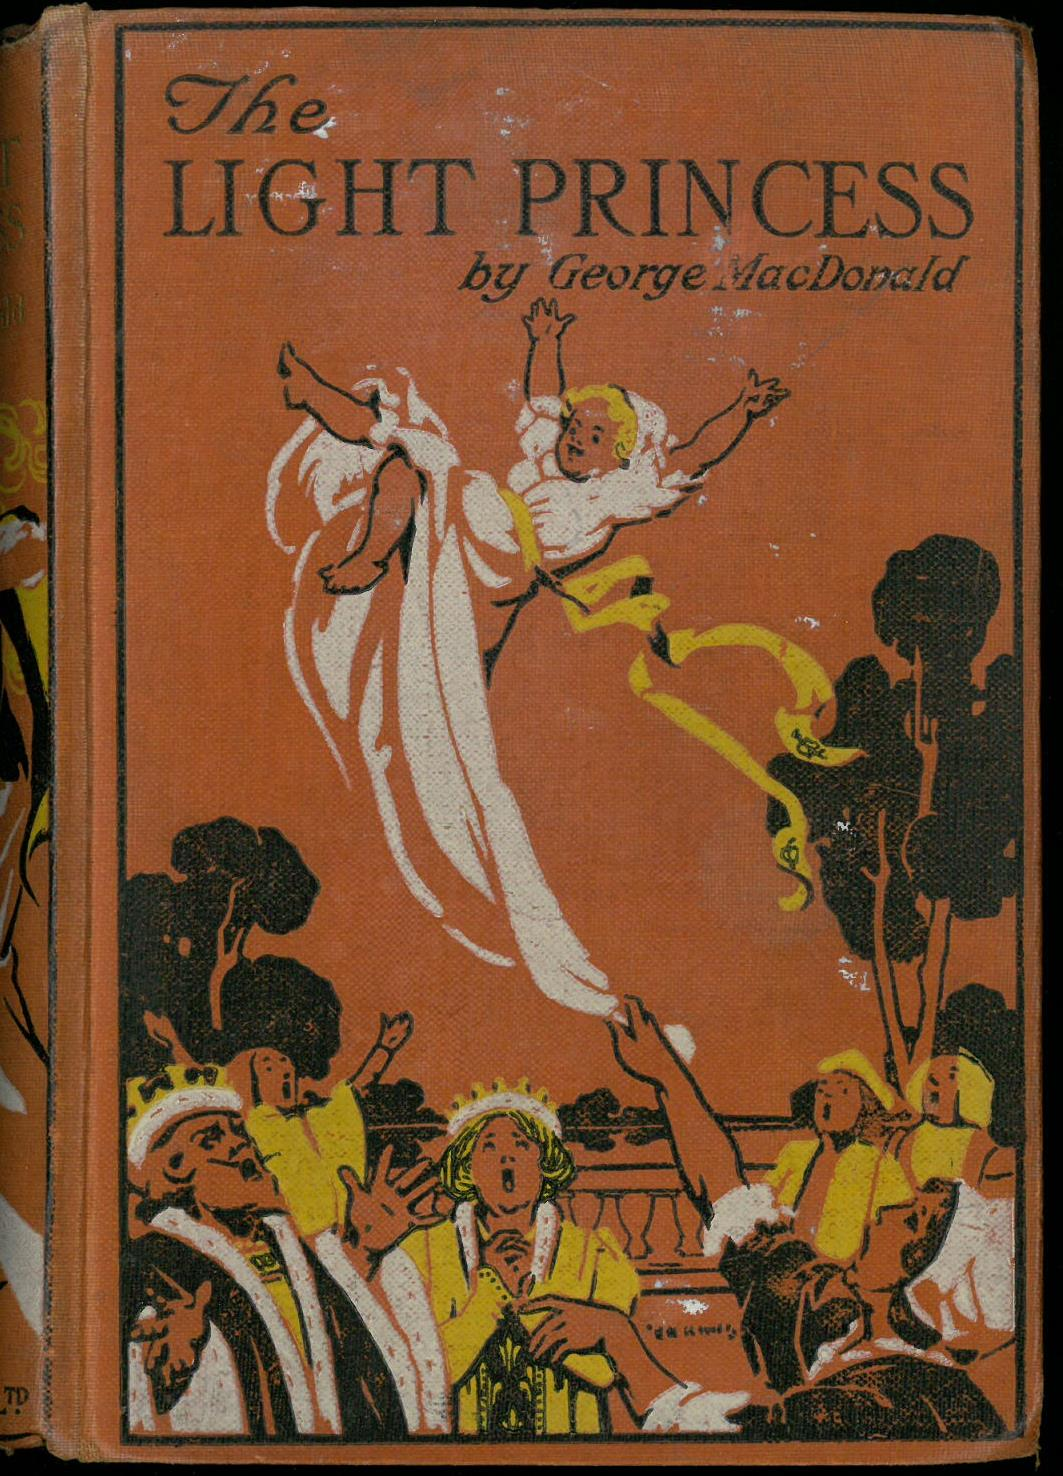 1890 edition of The Light Princess and Other Fairy Stories, published by Blackie and Son Limited. Special Collections Children's Literature PR4967 .L54 1890